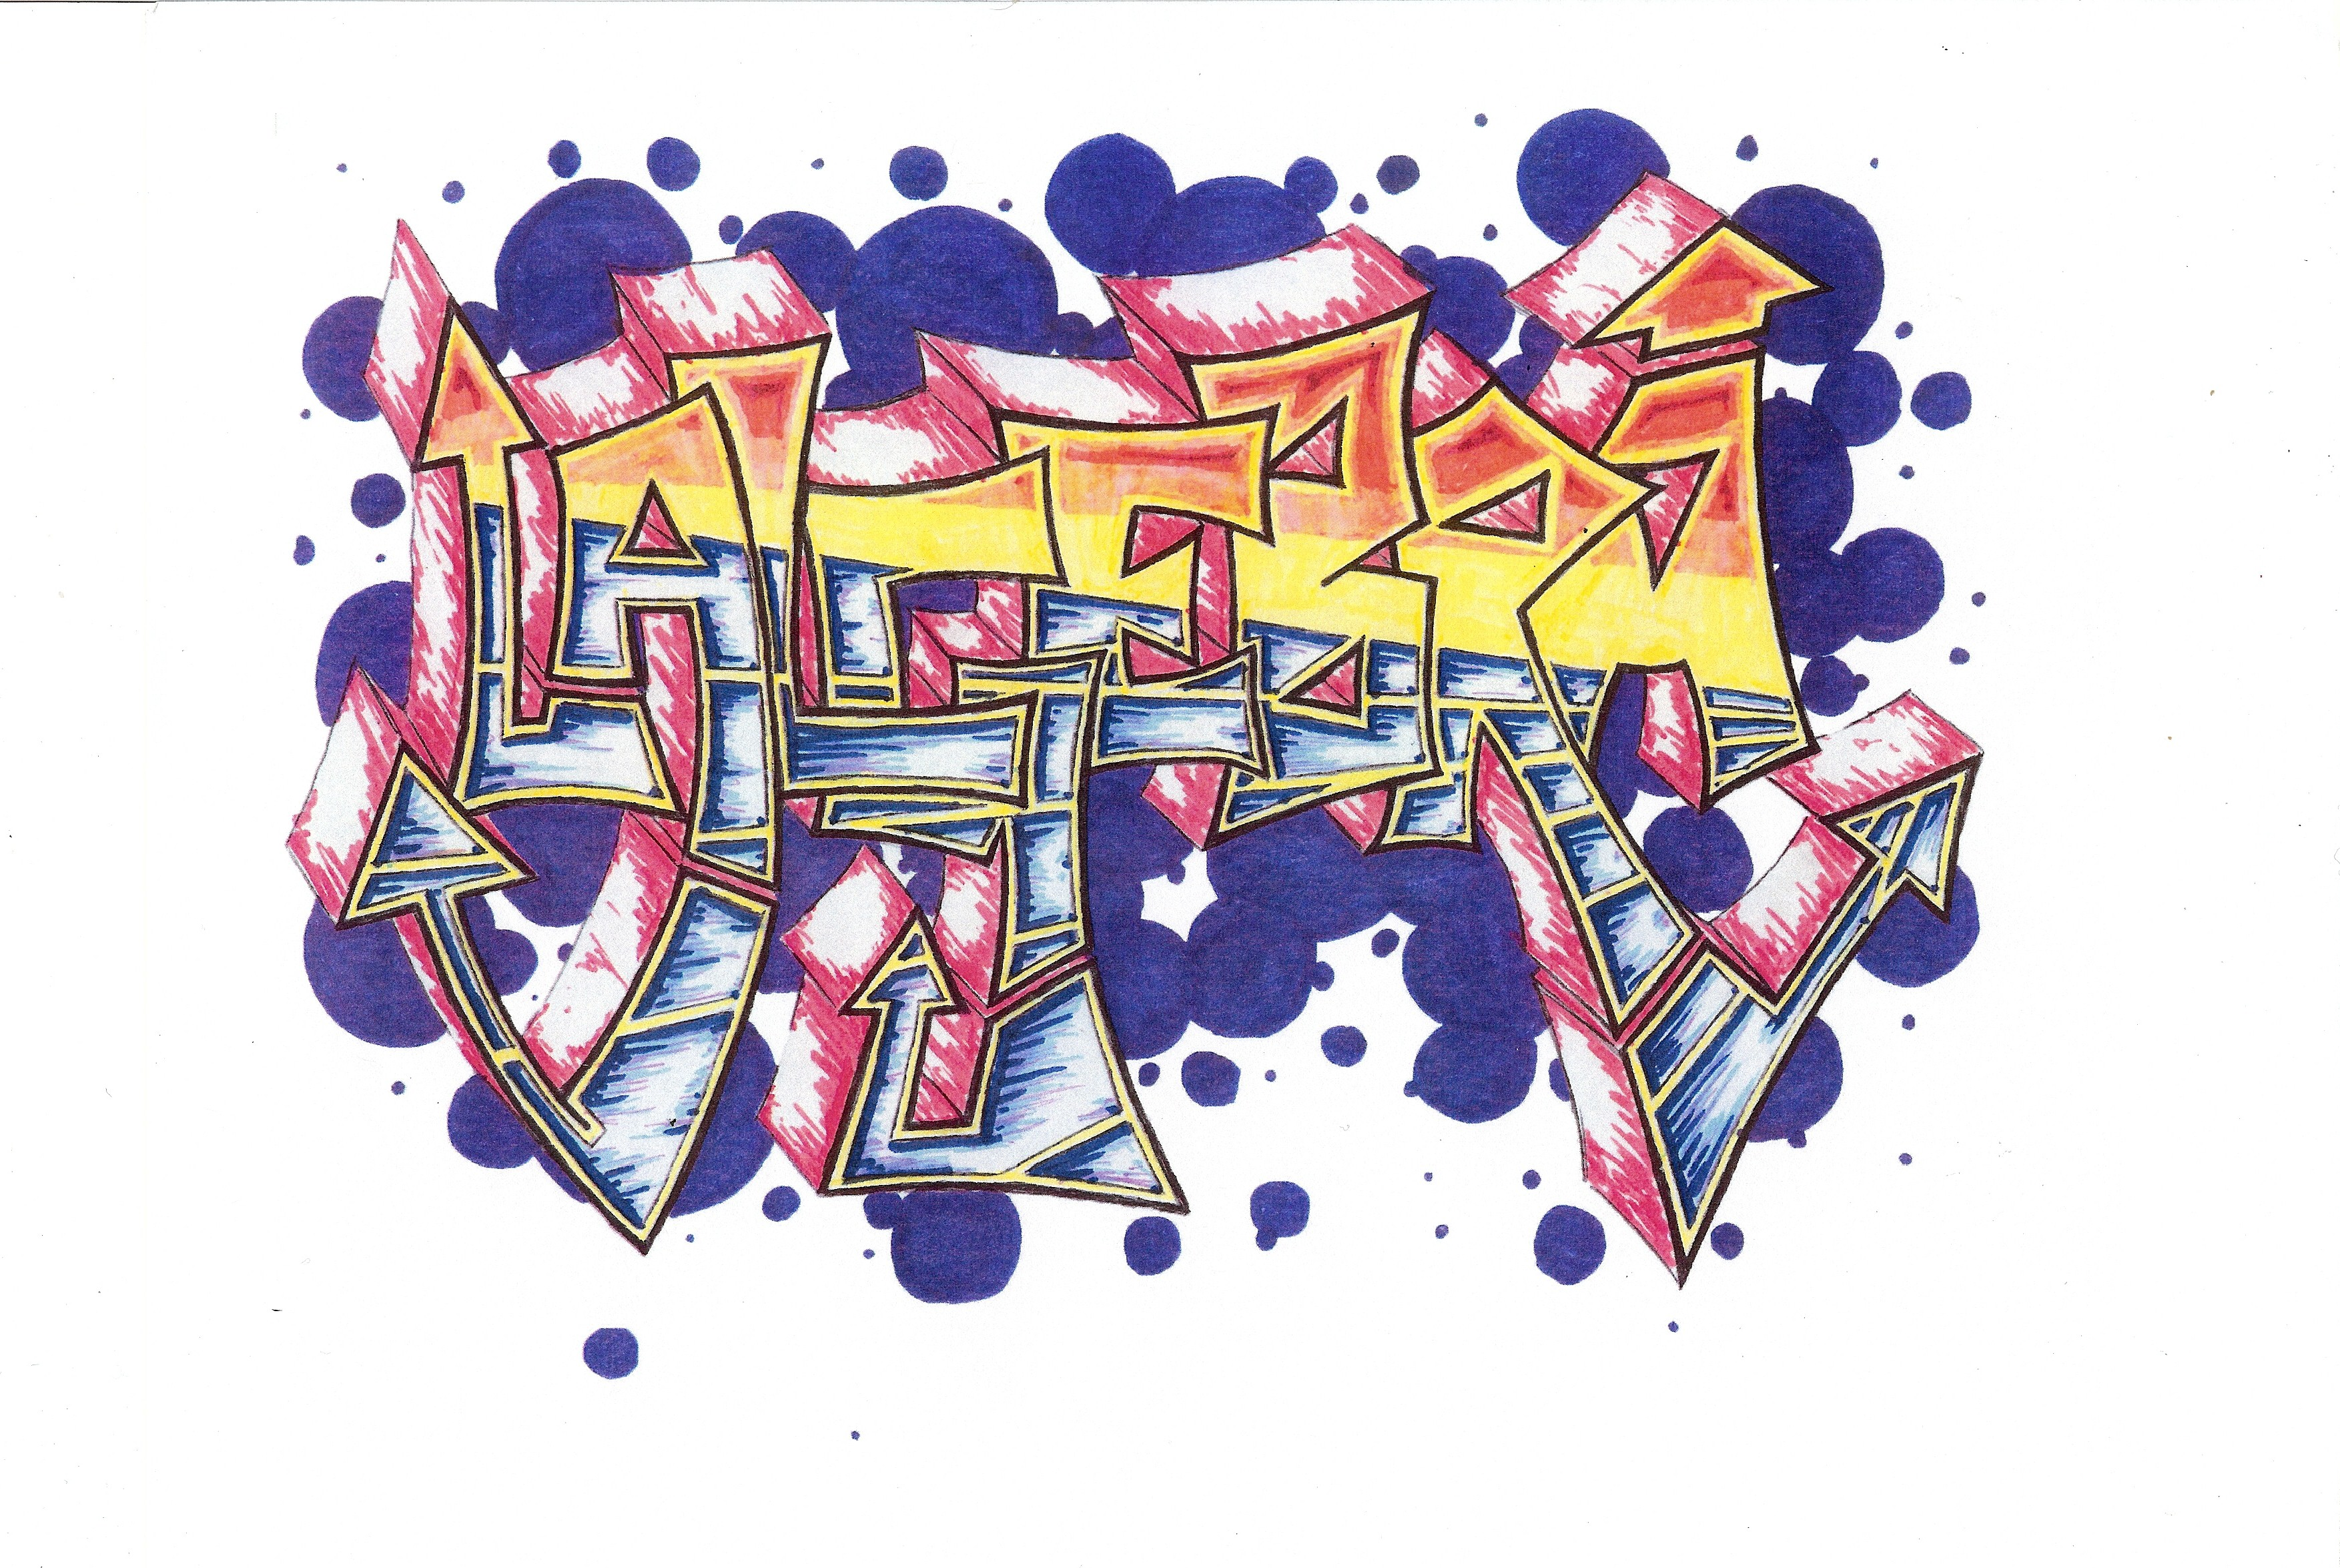 Algebra Graffiti by mhelms12 on DeviantArt